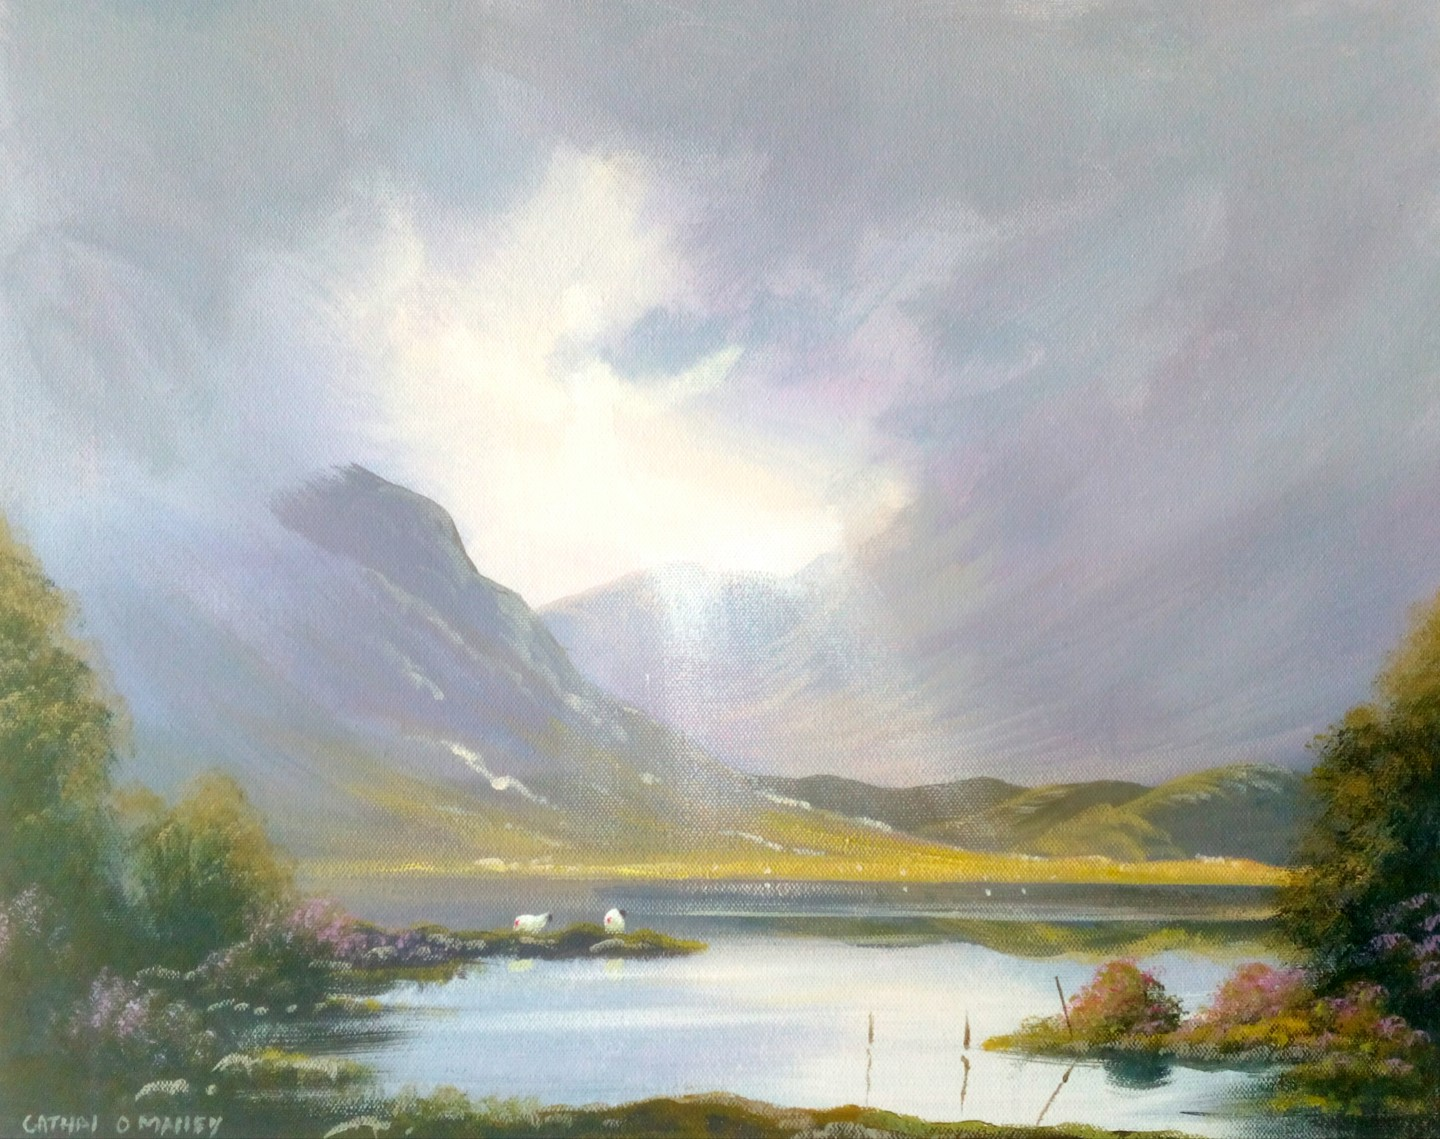 Cathal O Malley - Connemara springtime